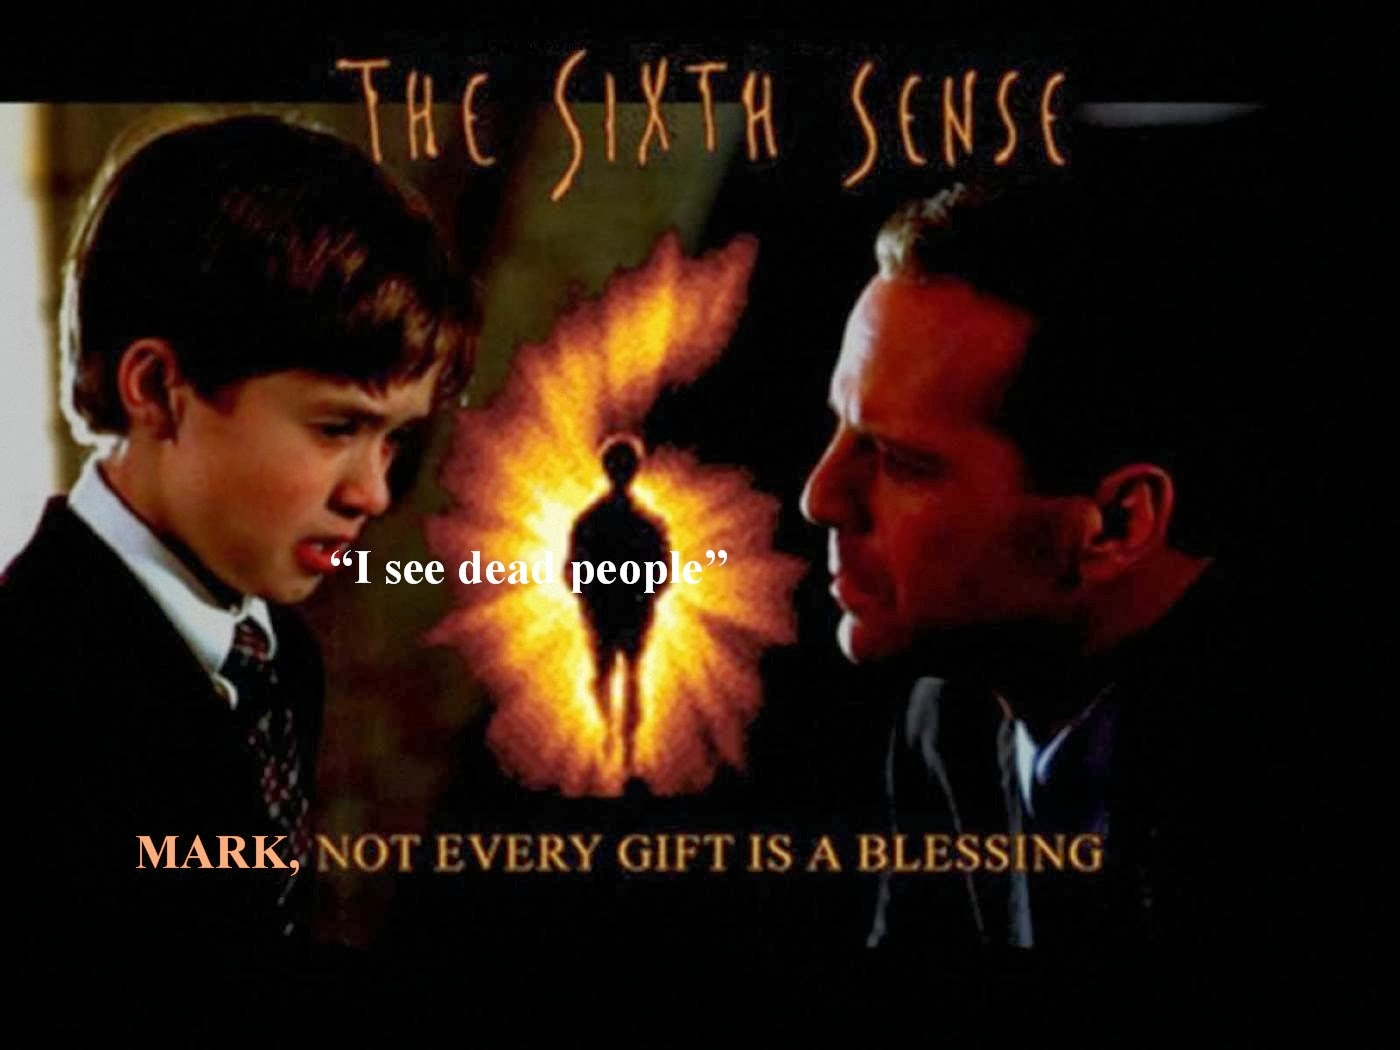 sixth sense essay Symbolism and irony used in the sixth sense symbolism and irony can be used in any type of movie or story to help show the plot or theme of it symbolism can be used to show many feelings or just add to the theme of the story.